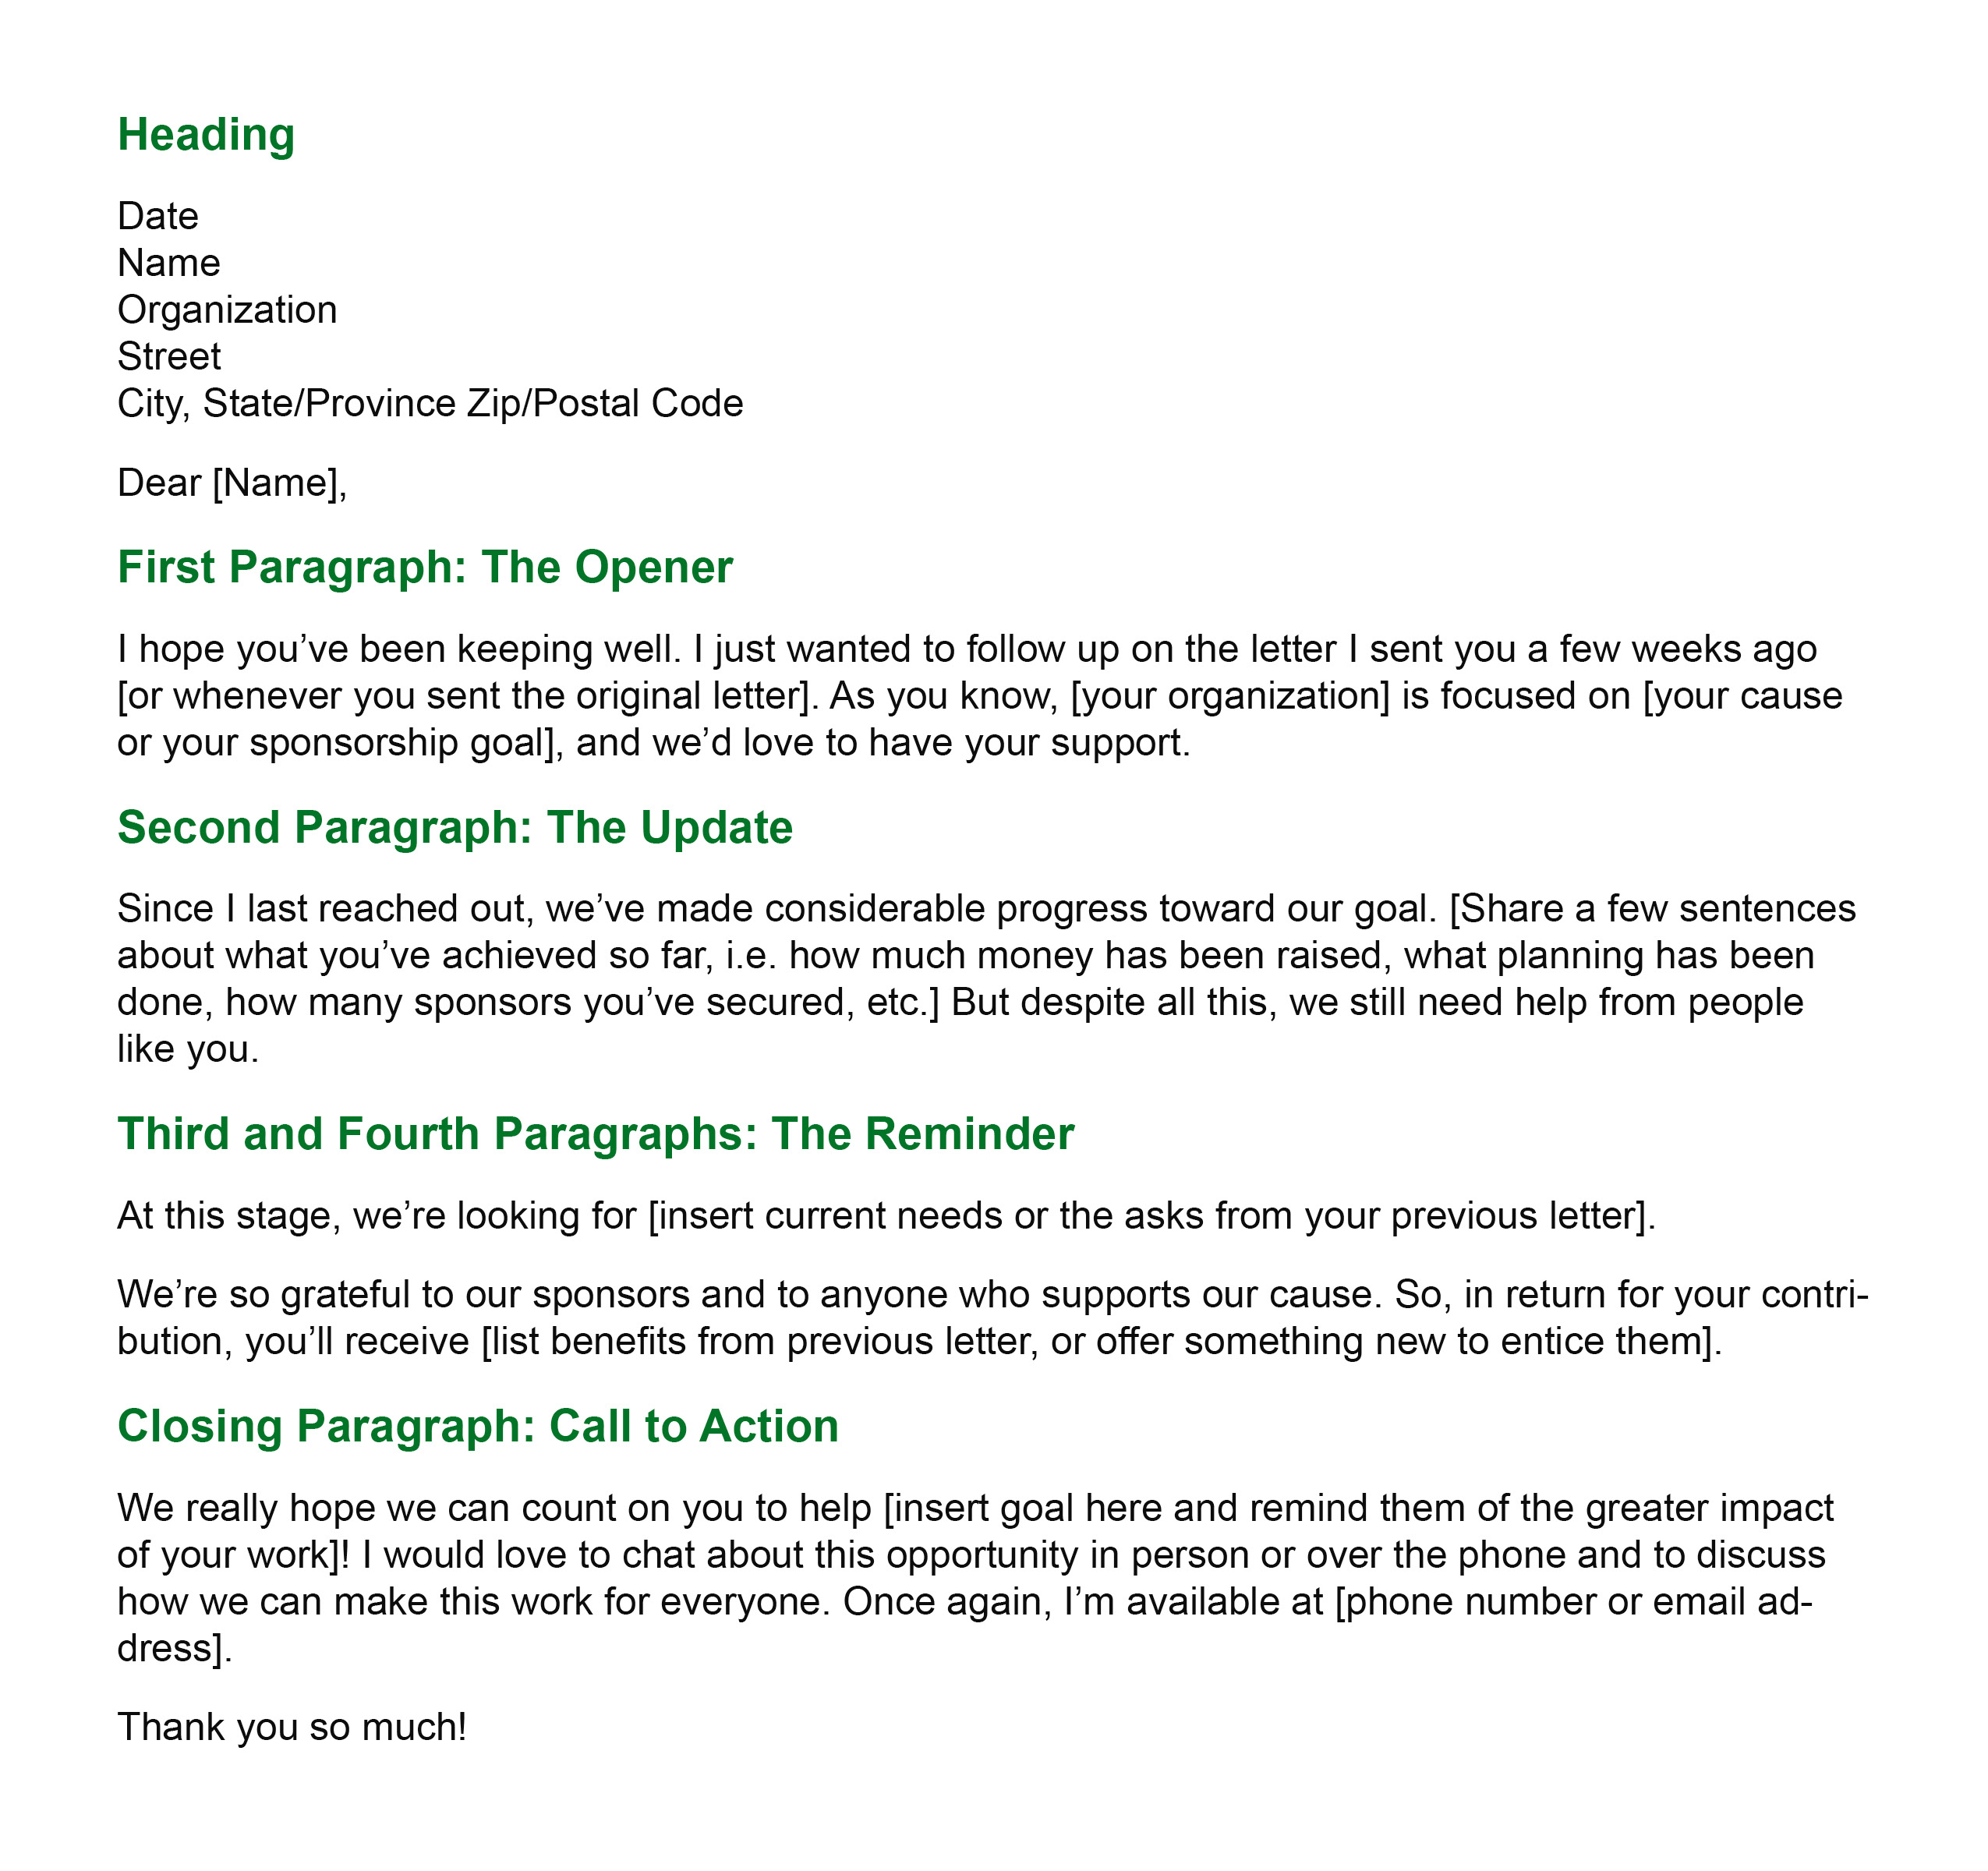 General Follow-Up Letter template